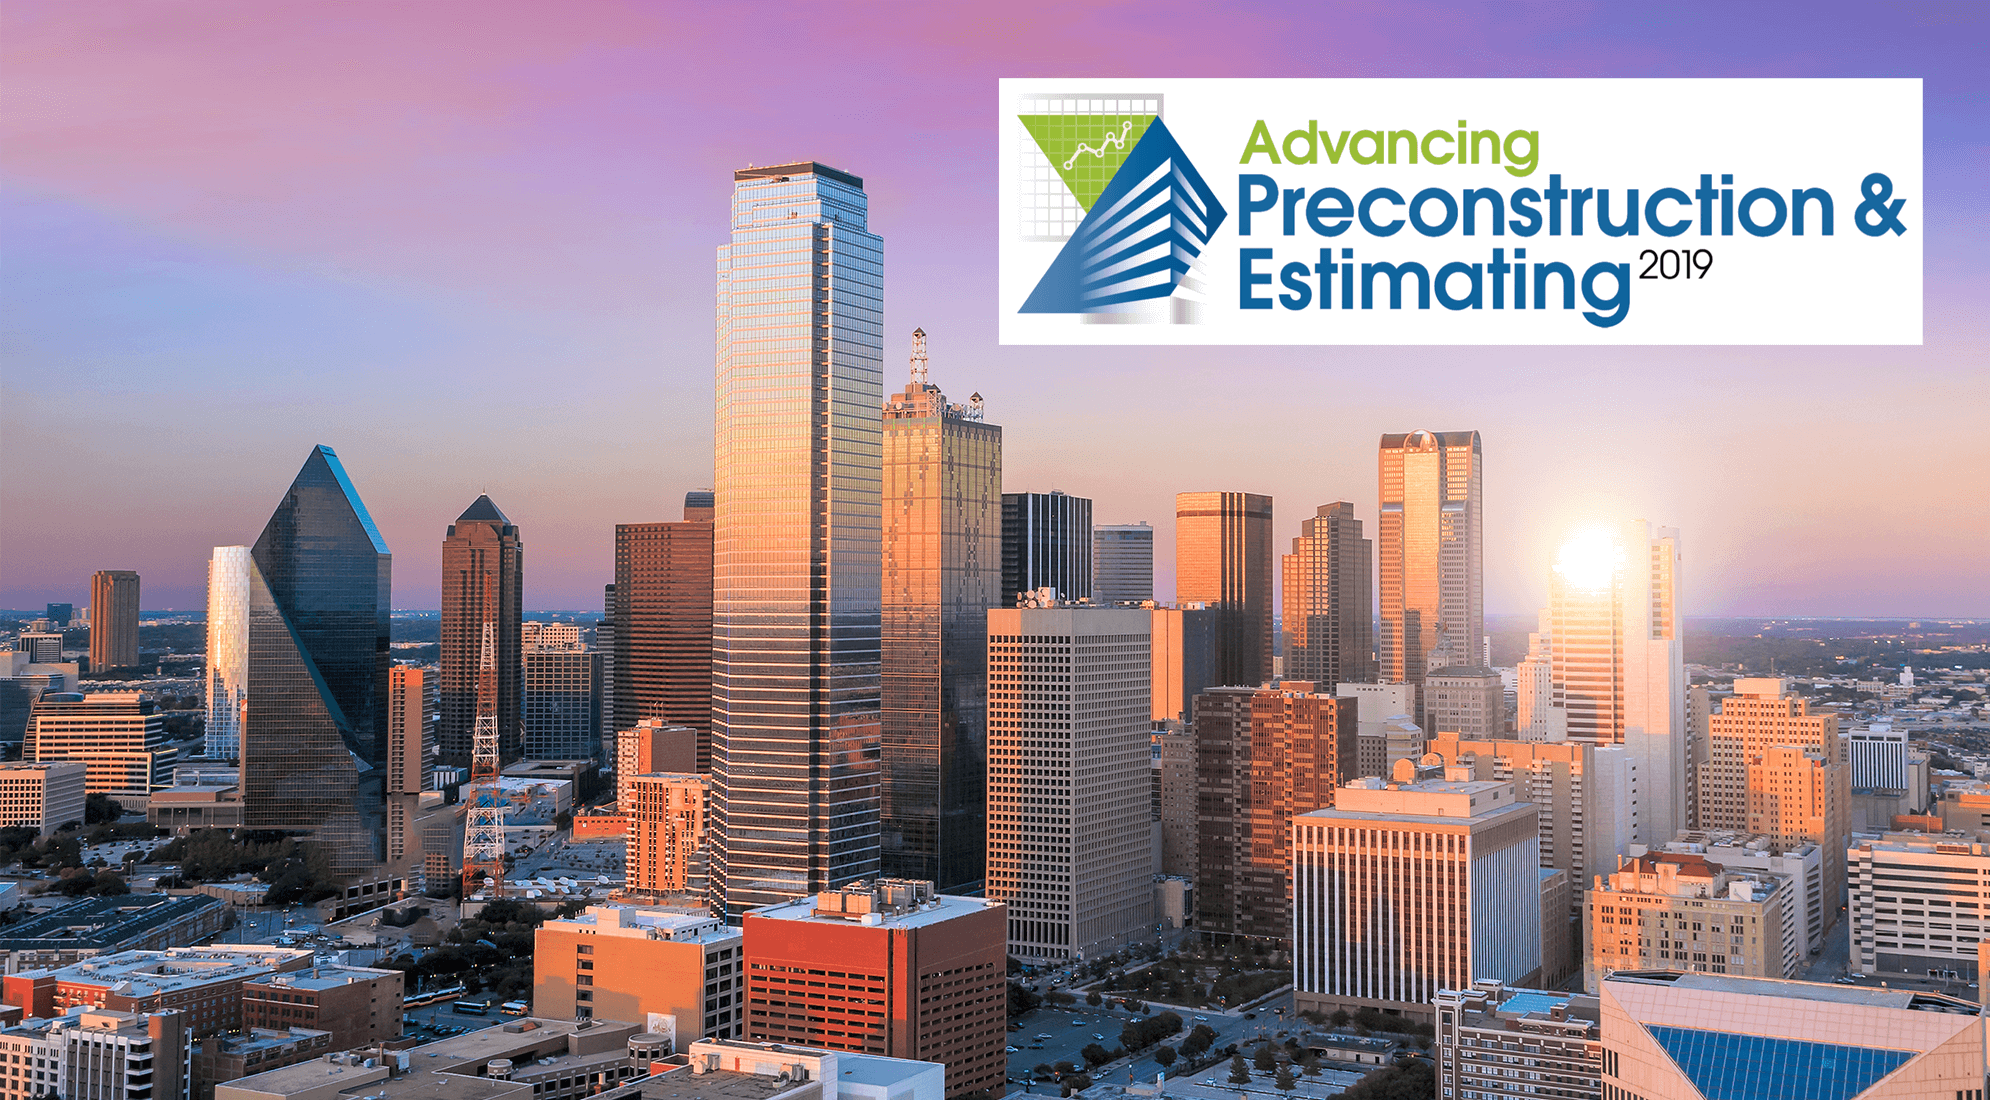 Advancing Preconstruction & Estimating 2019